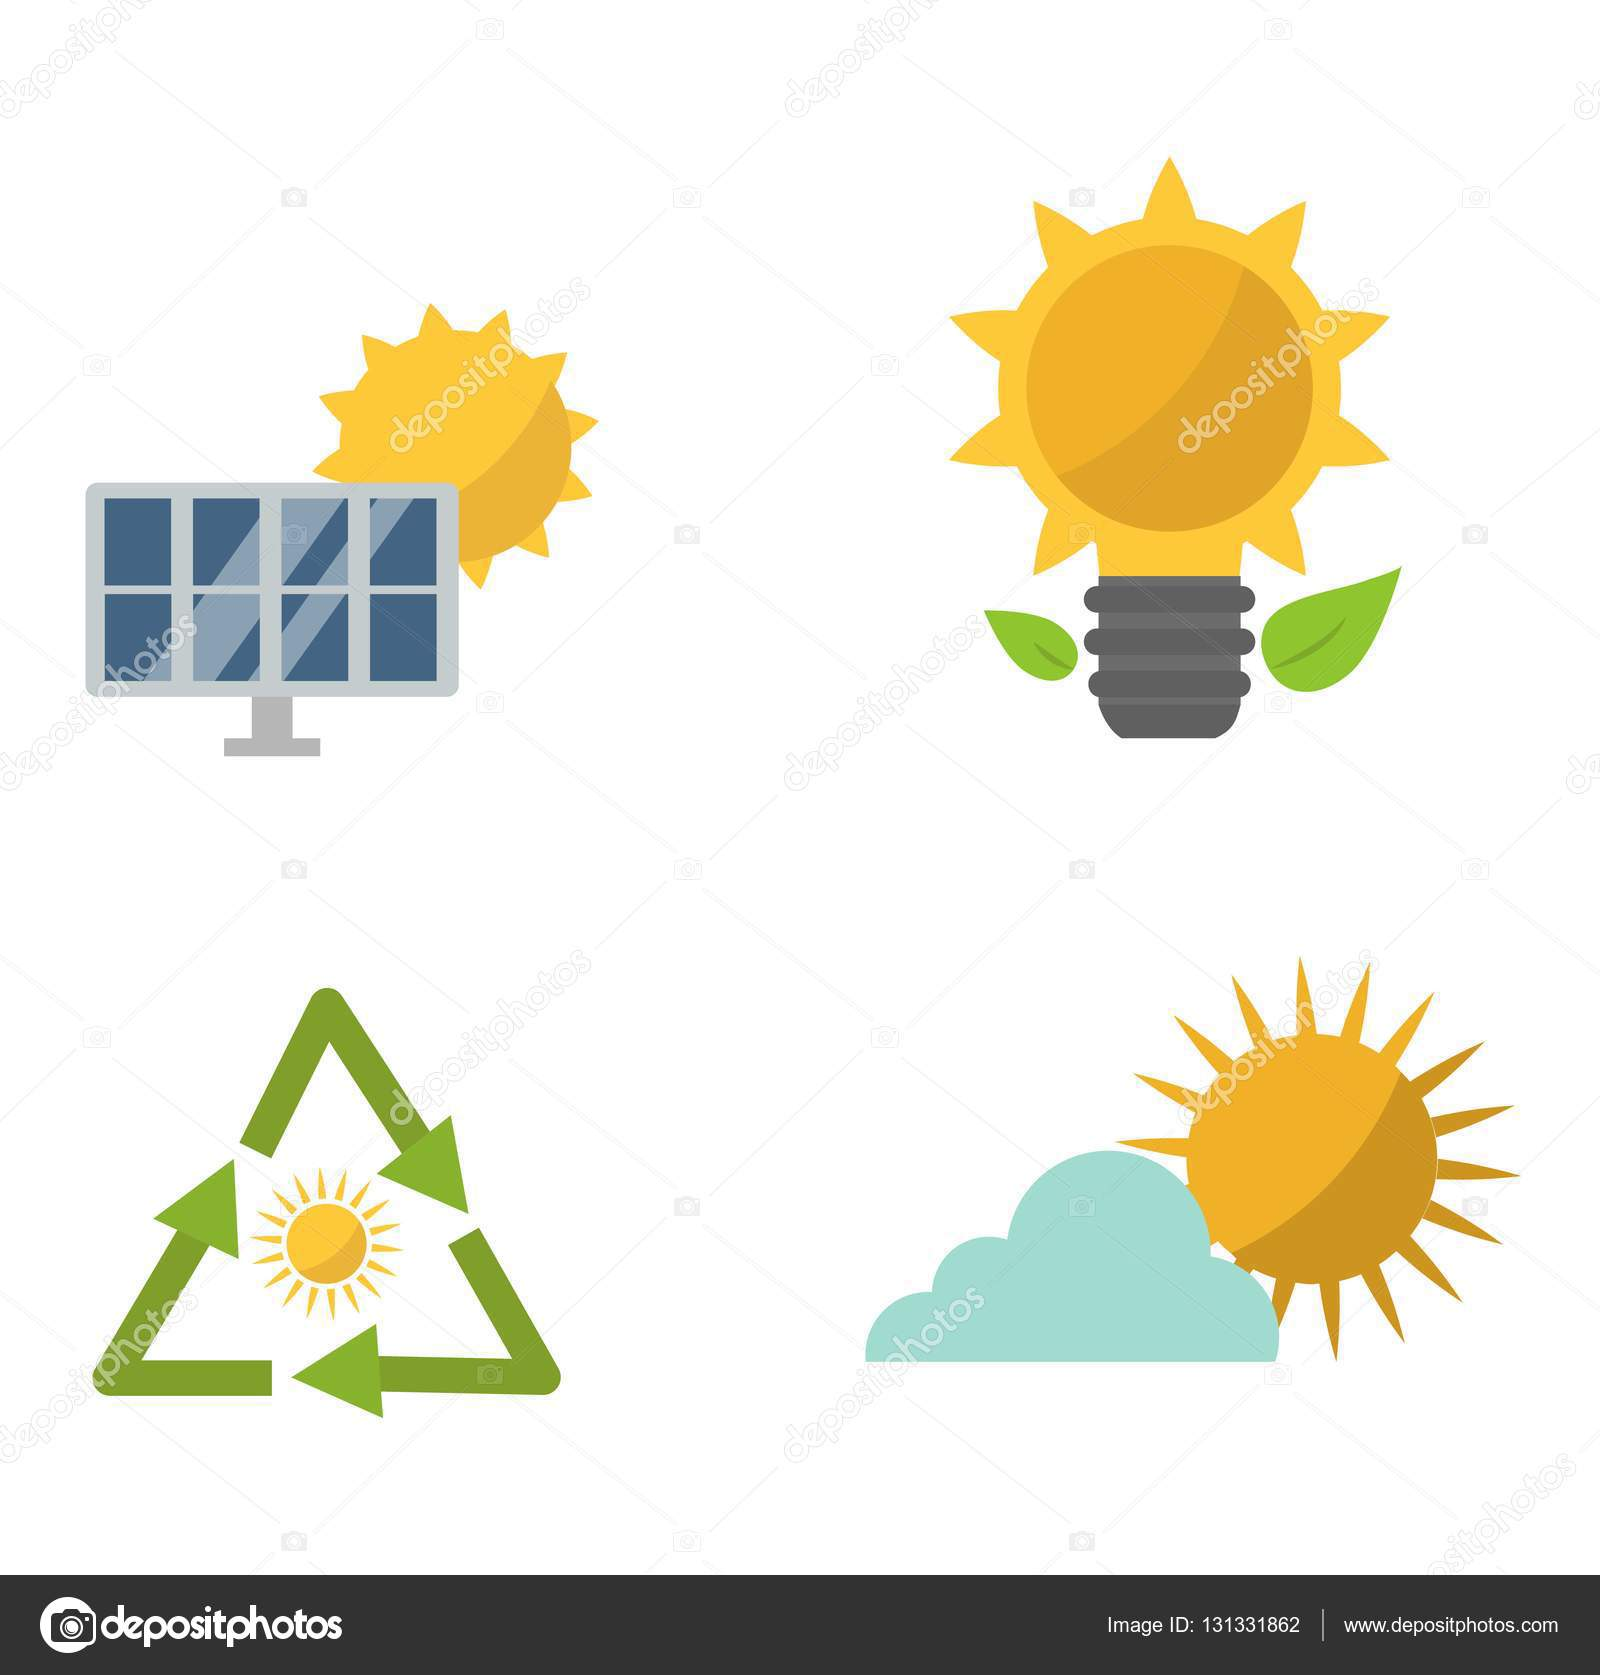 depositphotos_131331862-stock-illustration-sun-solar-energy-vector-set.jpg